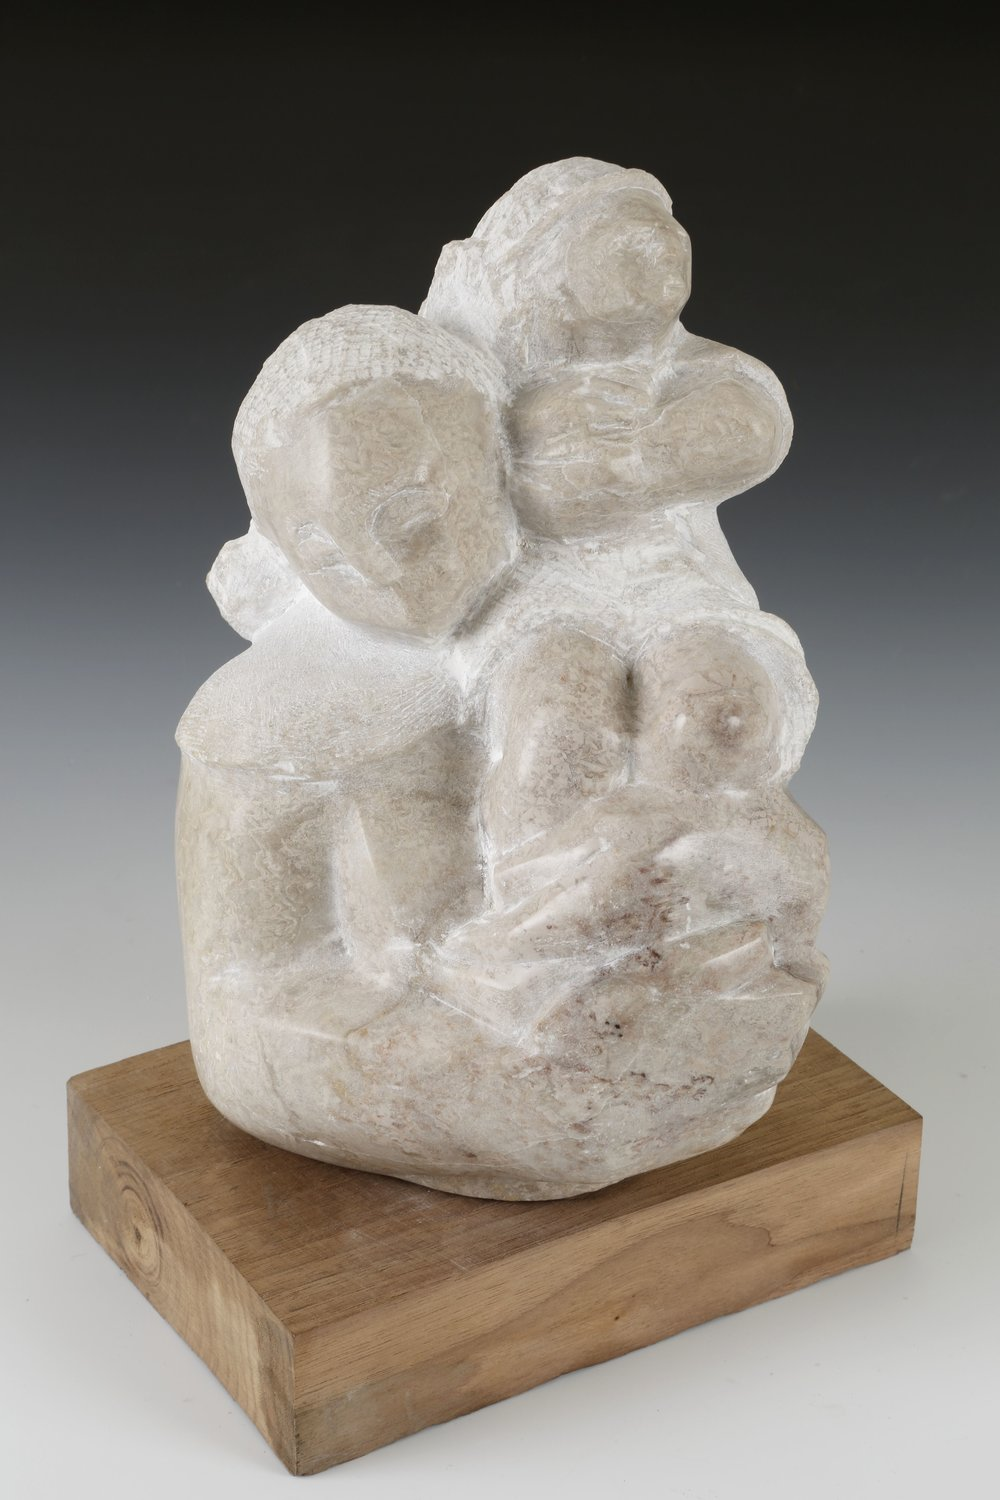 """Queen for a Day"" by William Duffy, alabaster sculpture on wood block"